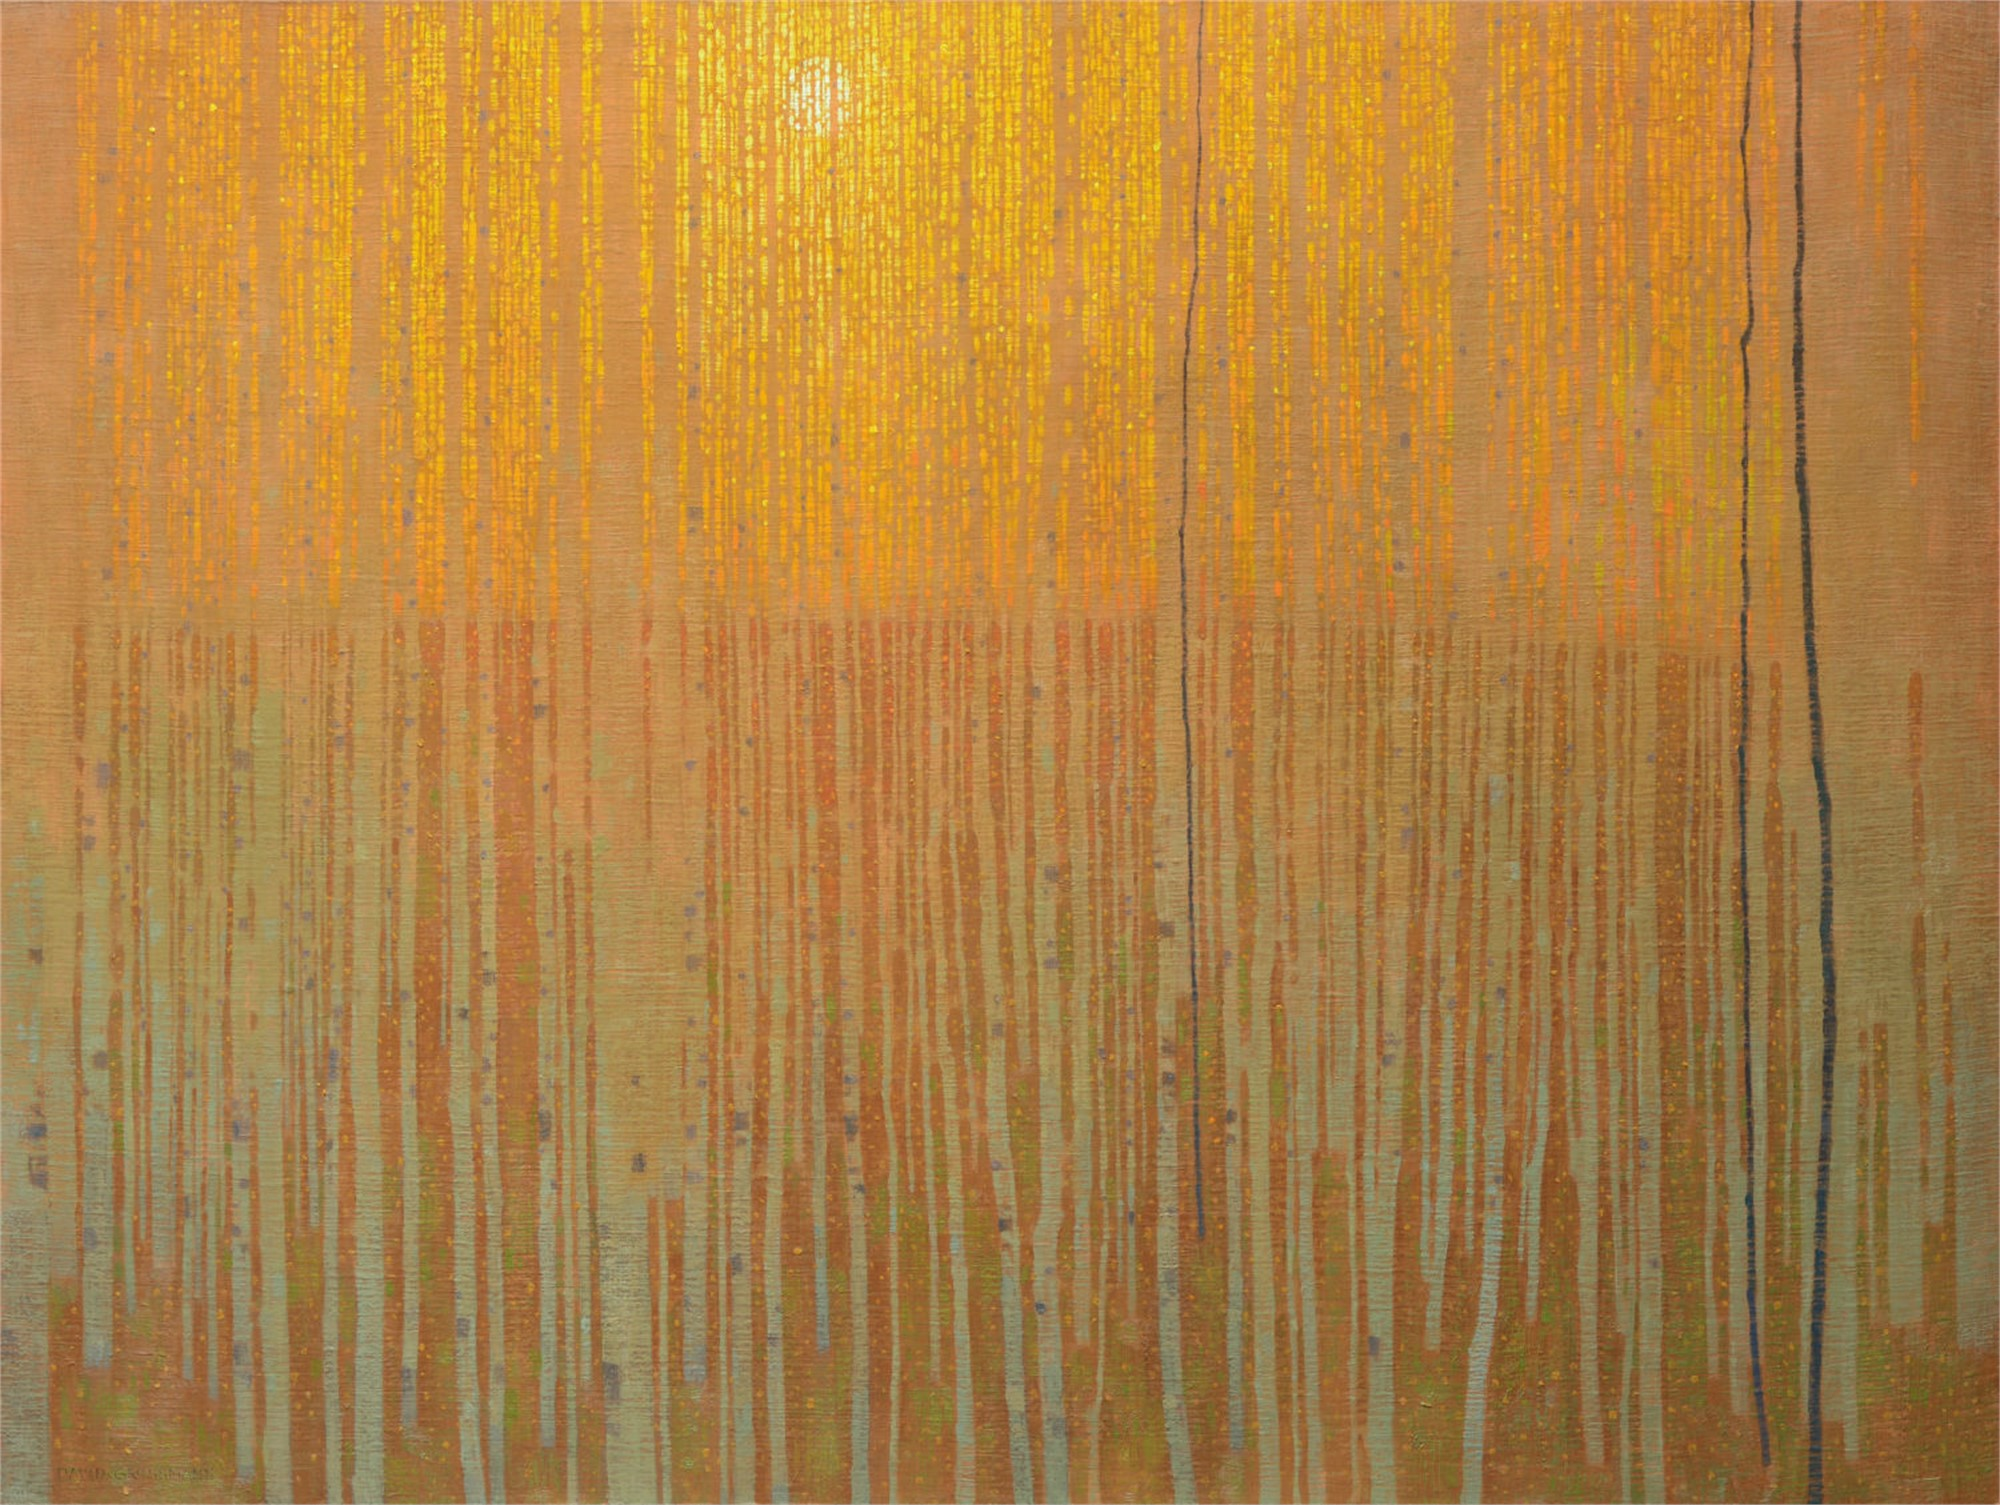 Autumn Forest Patterns by David Grossmann